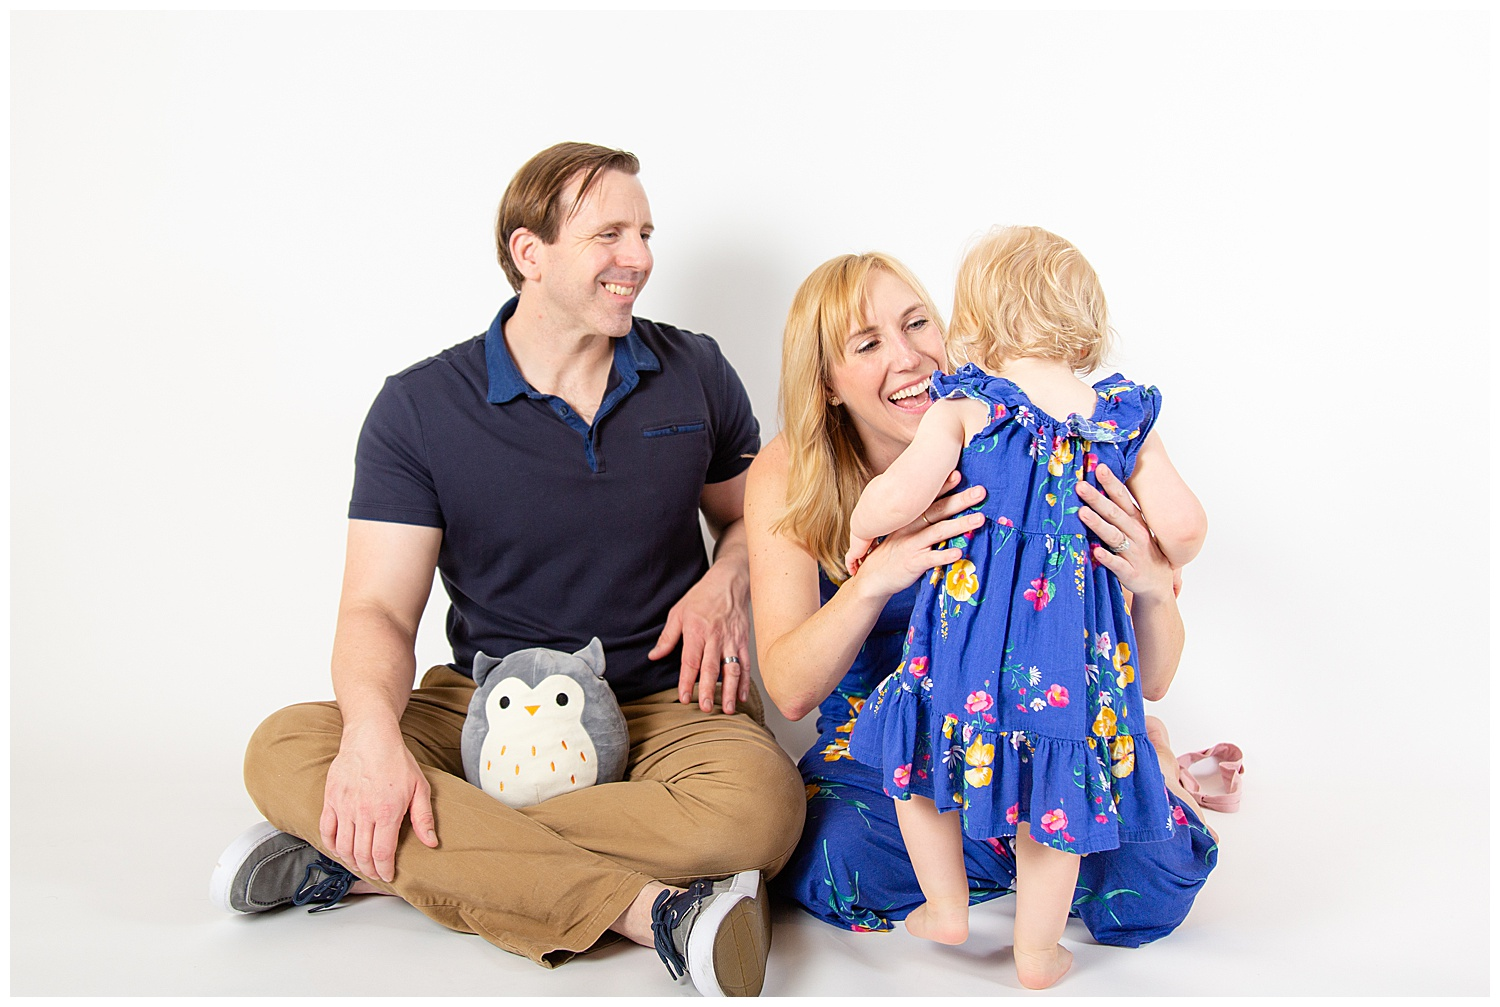 emily-belson-photography-family-session-05.jpg